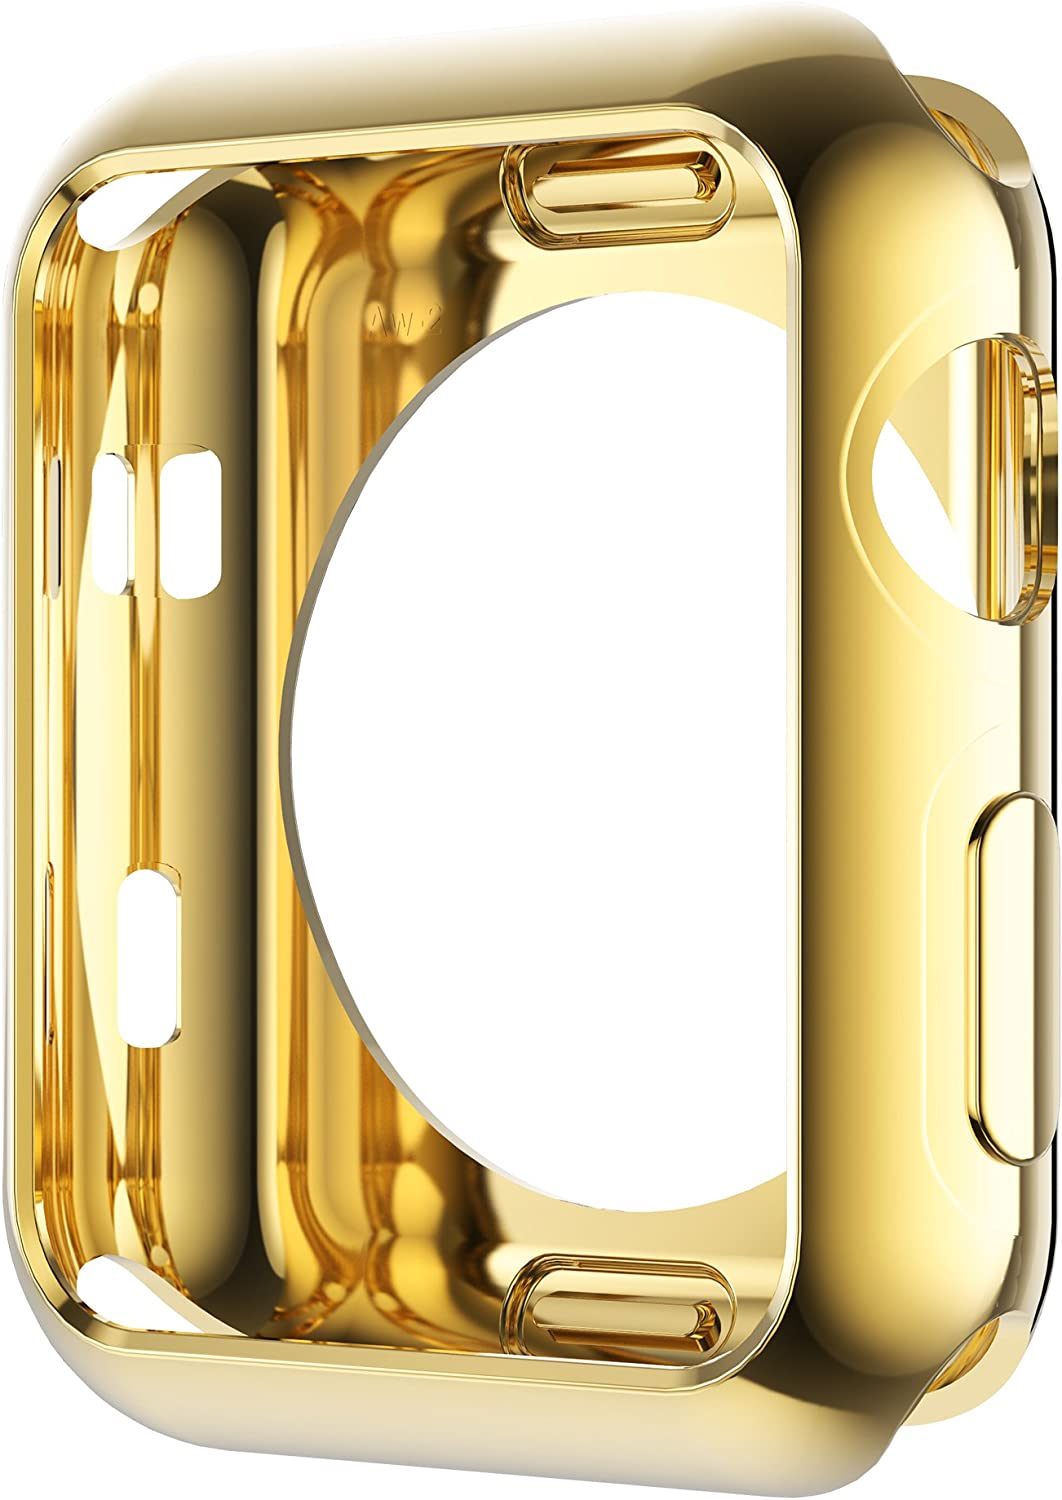 Leotop Compatible with Apple Watch Case 44mm 40mm, Soft Flexible TPU Plated Protector Bumper Shiny Cover Lightweight Thin Guard Shockproof Frame Compatible for iWatch Series 6 5 4 SE(1-Gold, 44mm)